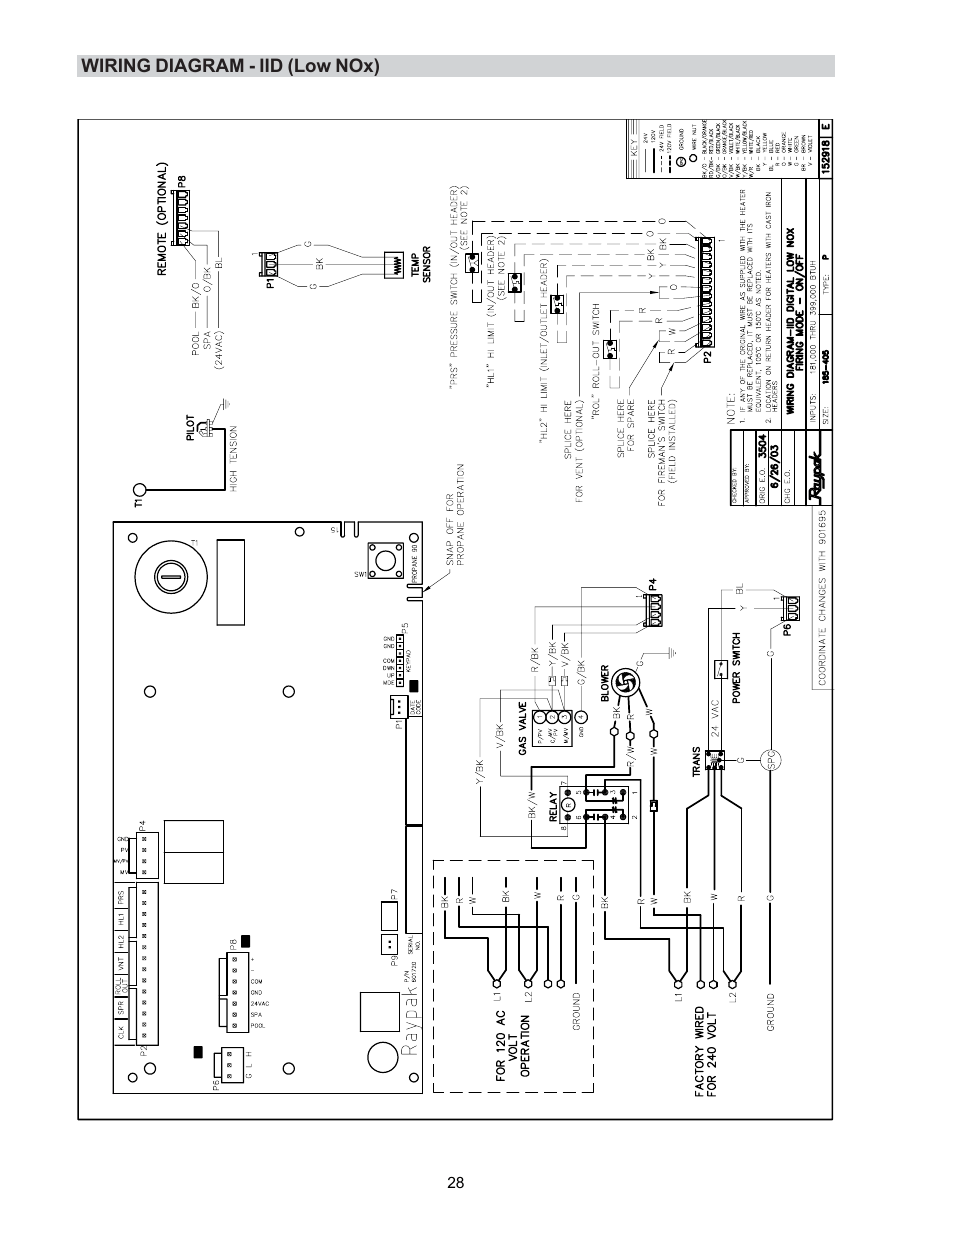 Brett Aqualine Wiring Diagram Emerson Wiring Diagram